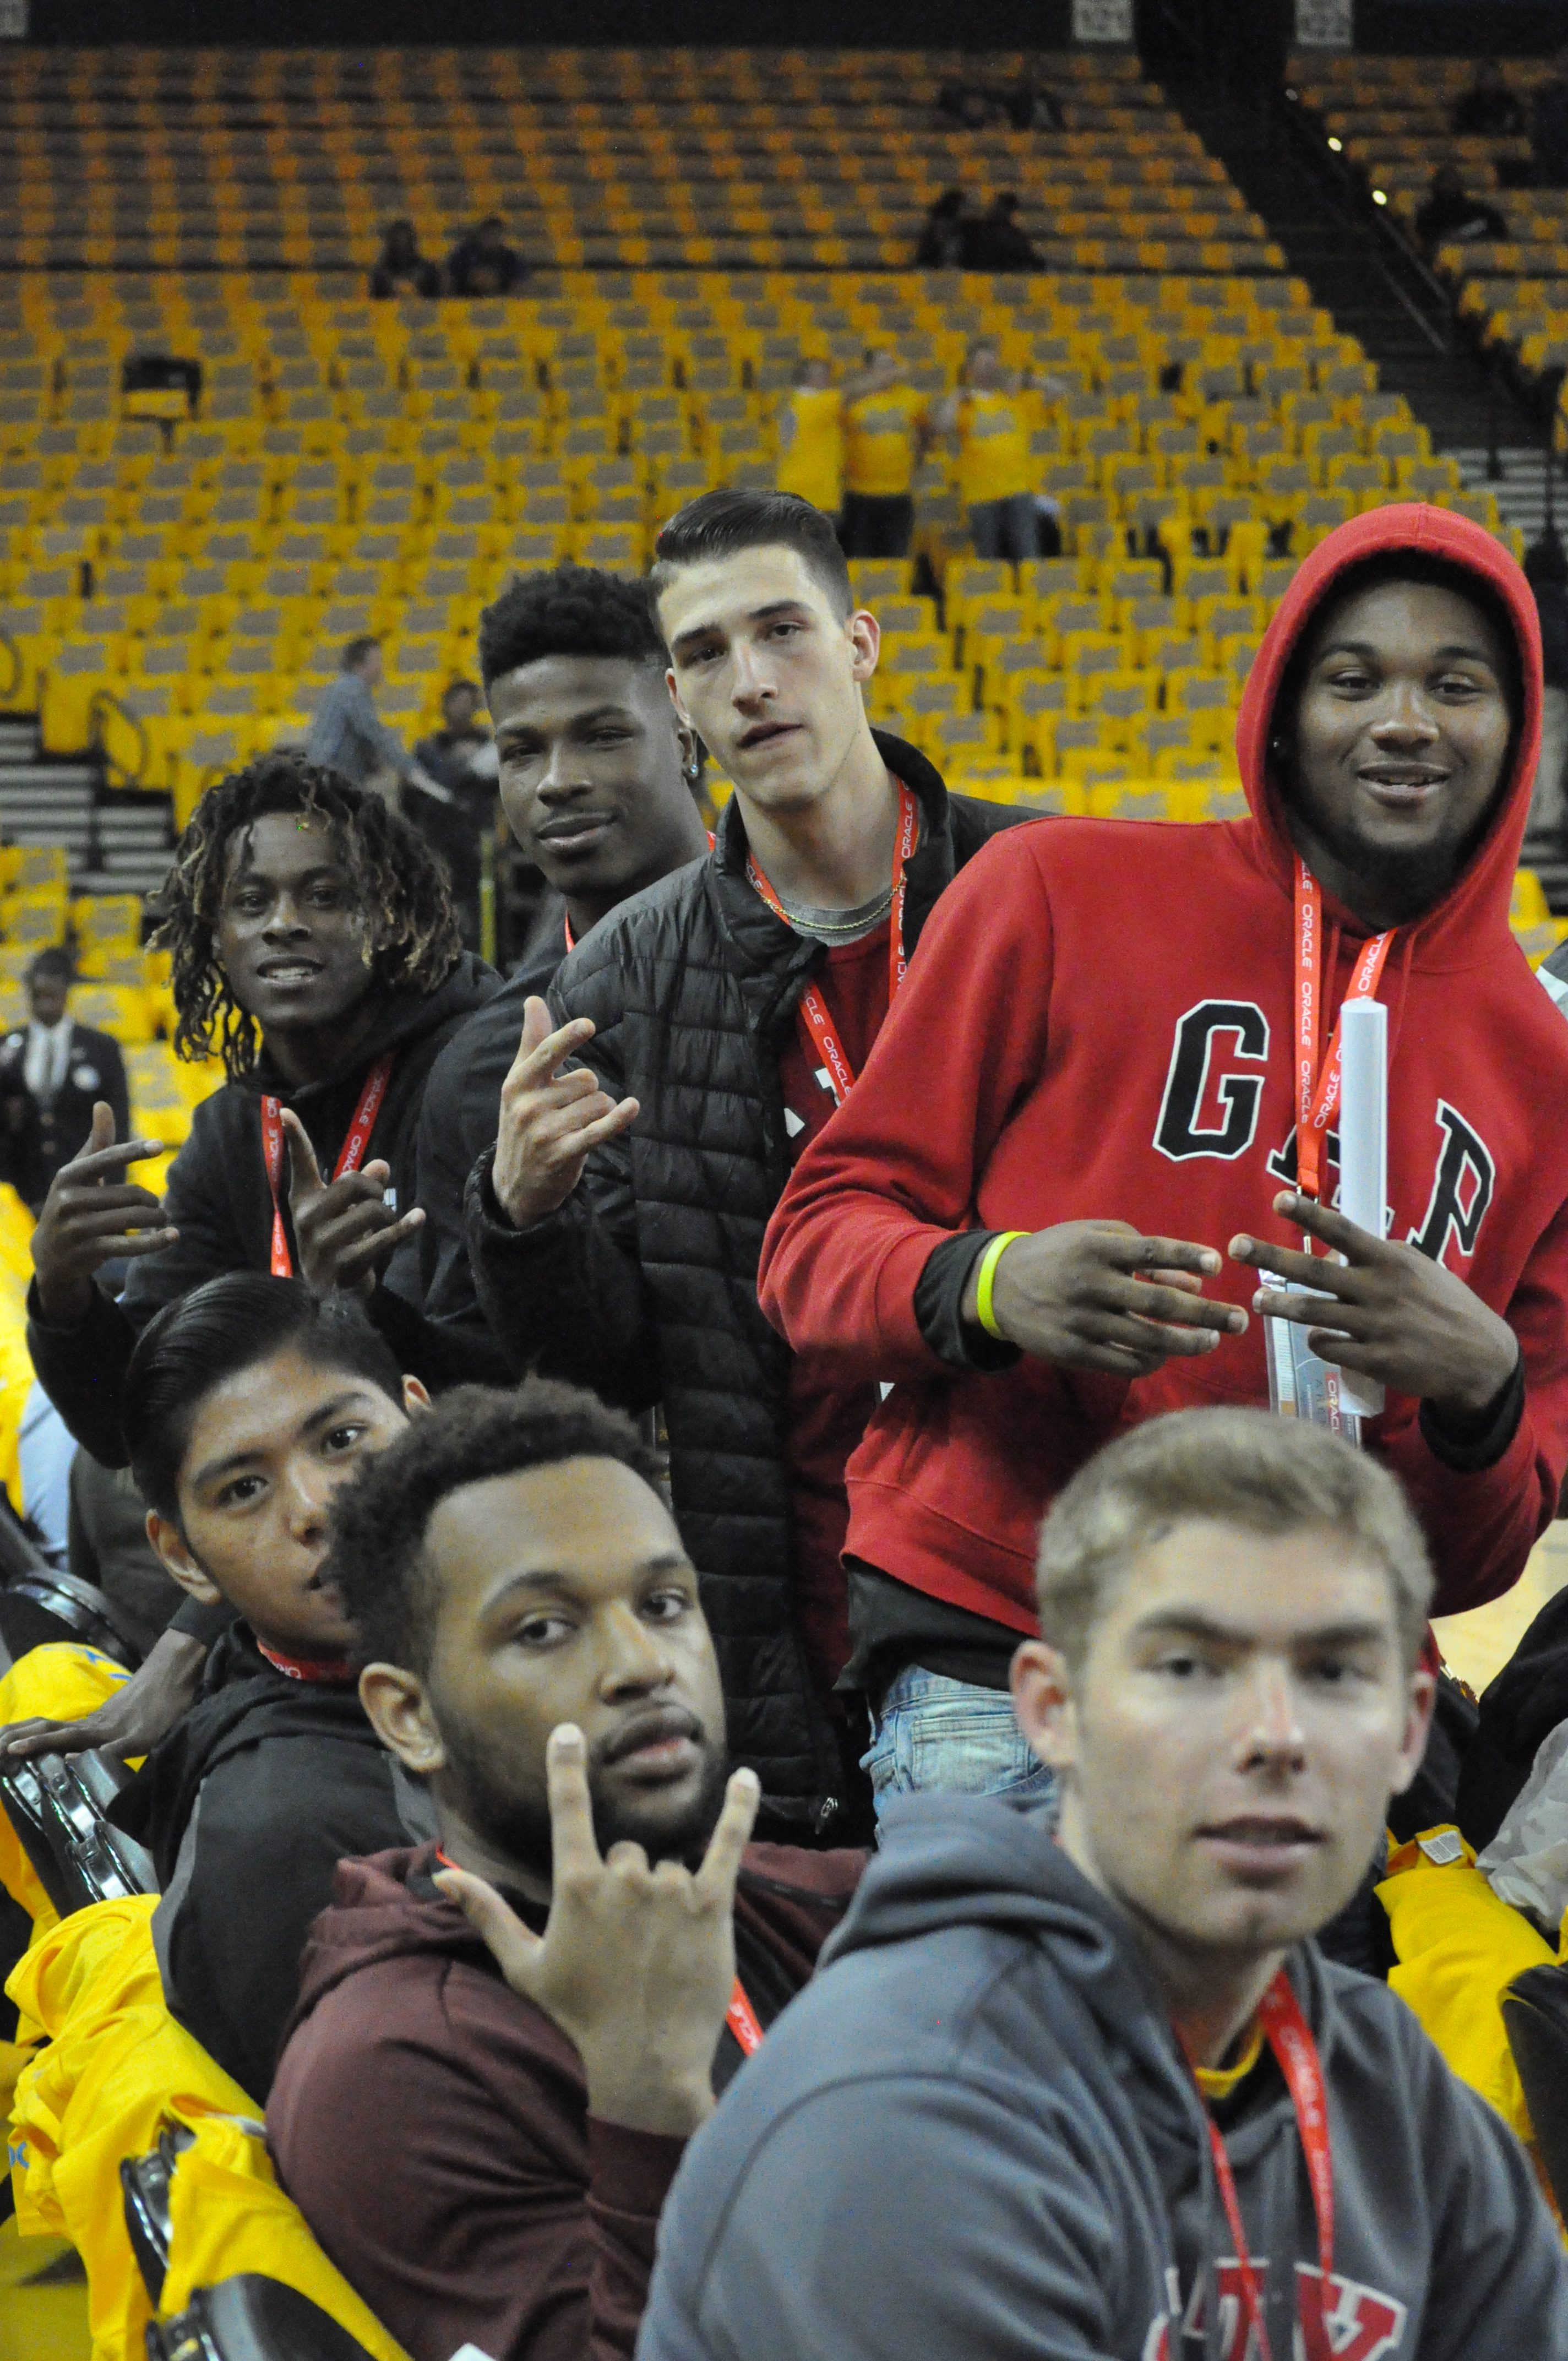 Rams players Curtis Witt, front to back, Austin Harris, Ben Borja, Lewis Hayes, Eddy Ionescu, Dexter Hood, and Terrell Brown sitting court-side during warmups at the Warriors vs Spurs Game 2 NBA playoff on April 16, 2018.  Photo by Peter J. Suter/The Guardsman.